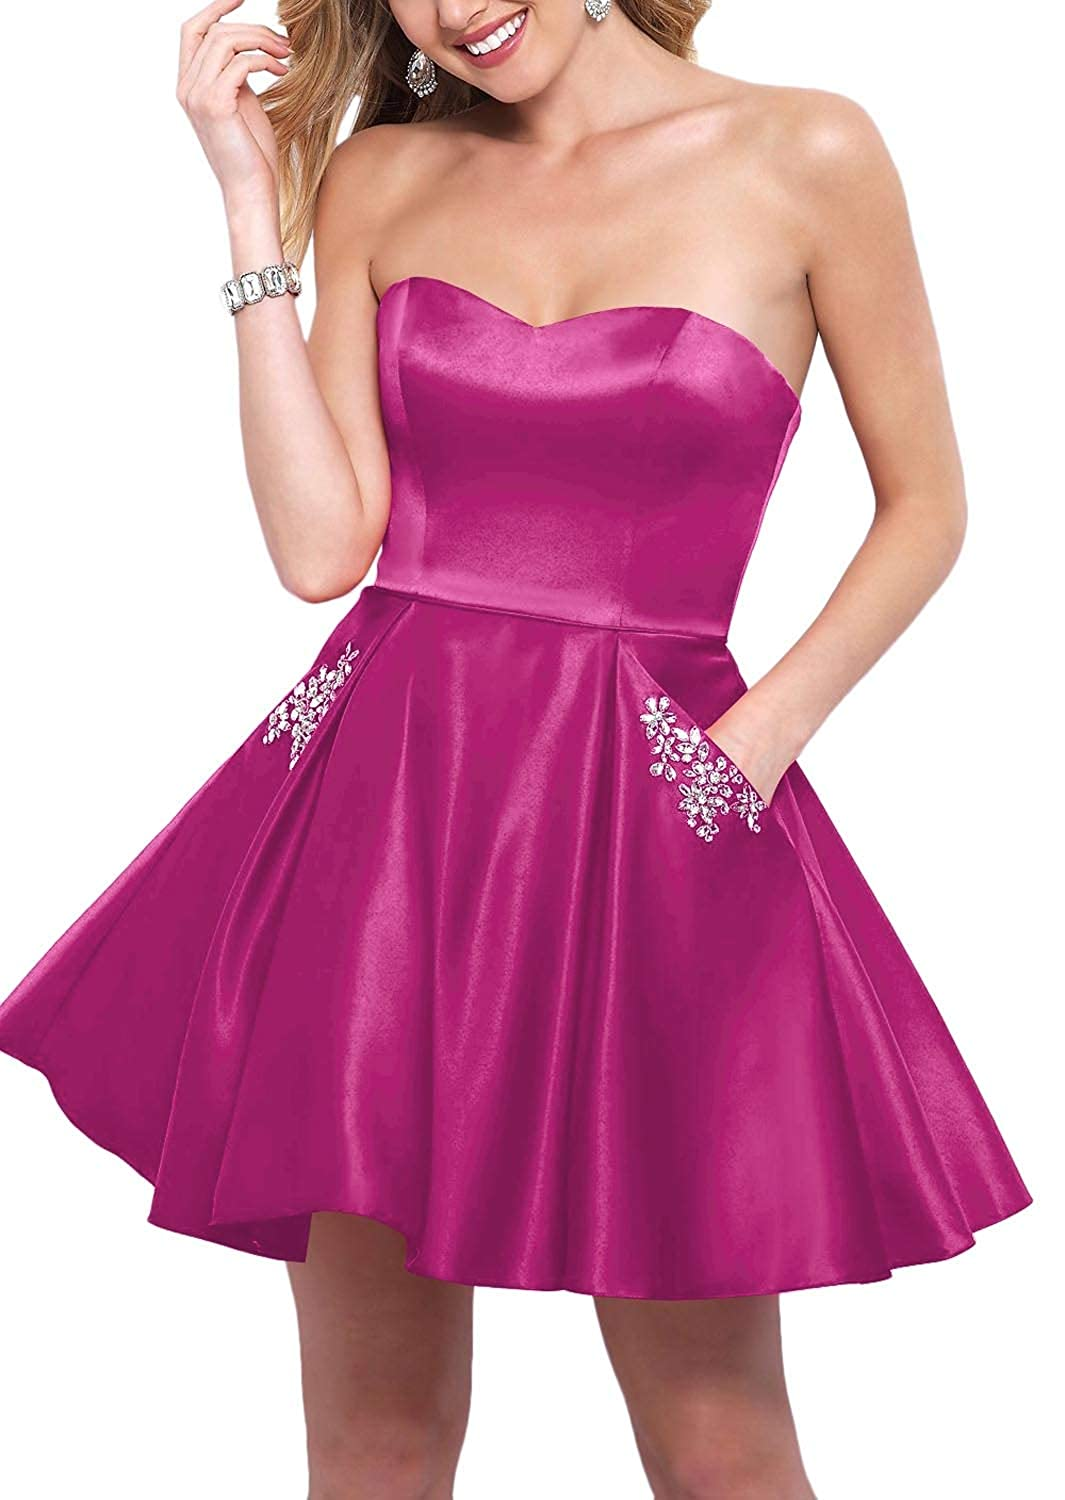 Hot Pink YnanLi Dress Short Ball Gown Homecoming Dresses 2019 Strapless Sweetheart with Beaded Pockets